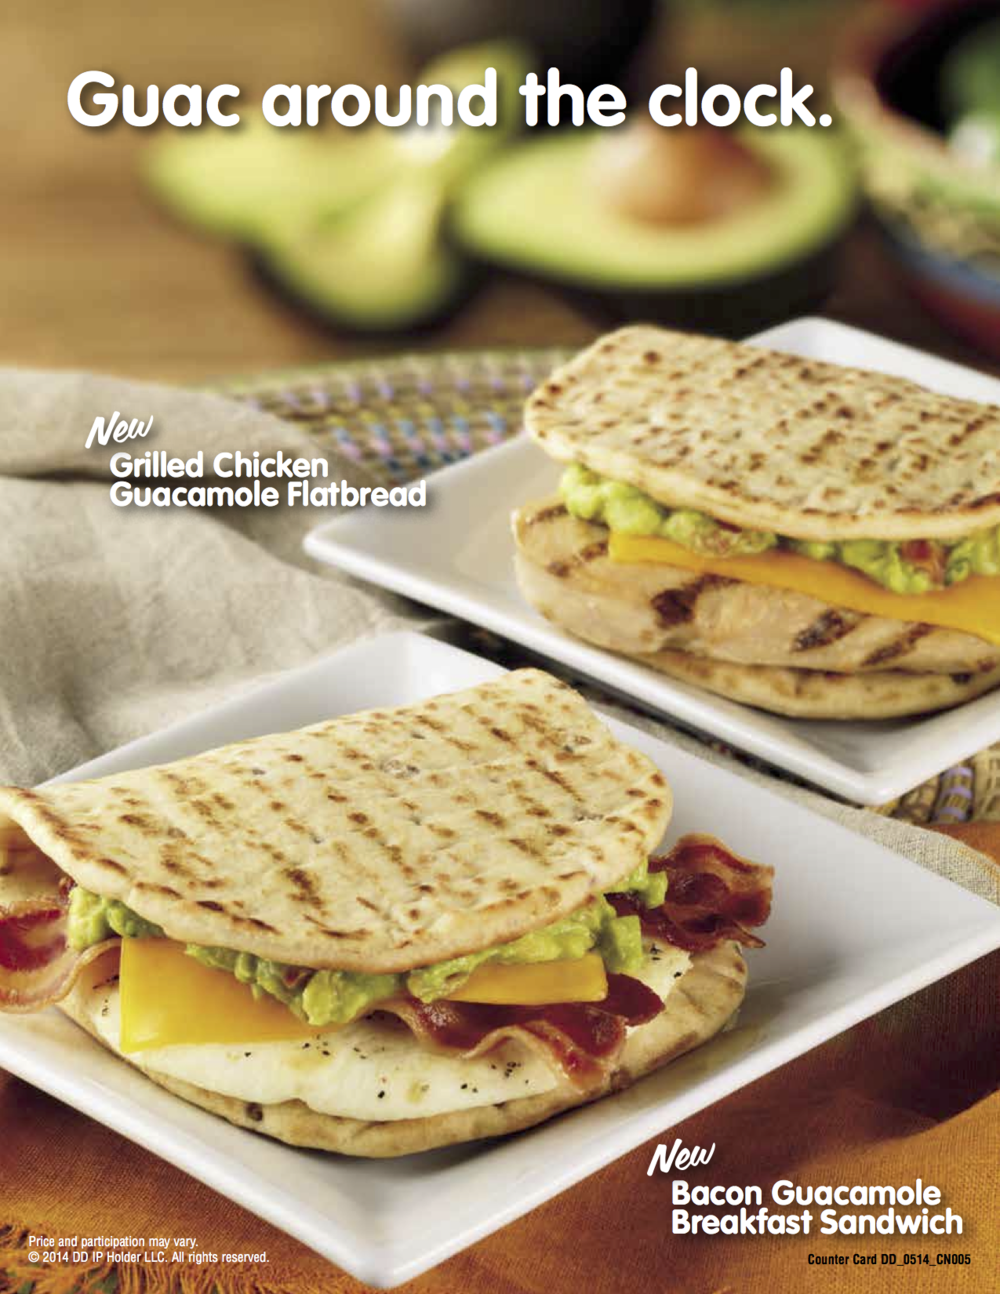 Guacamole is now available anytime on any sandwich, like the NEW Bacon Guacamole Breakfast Sandwich.